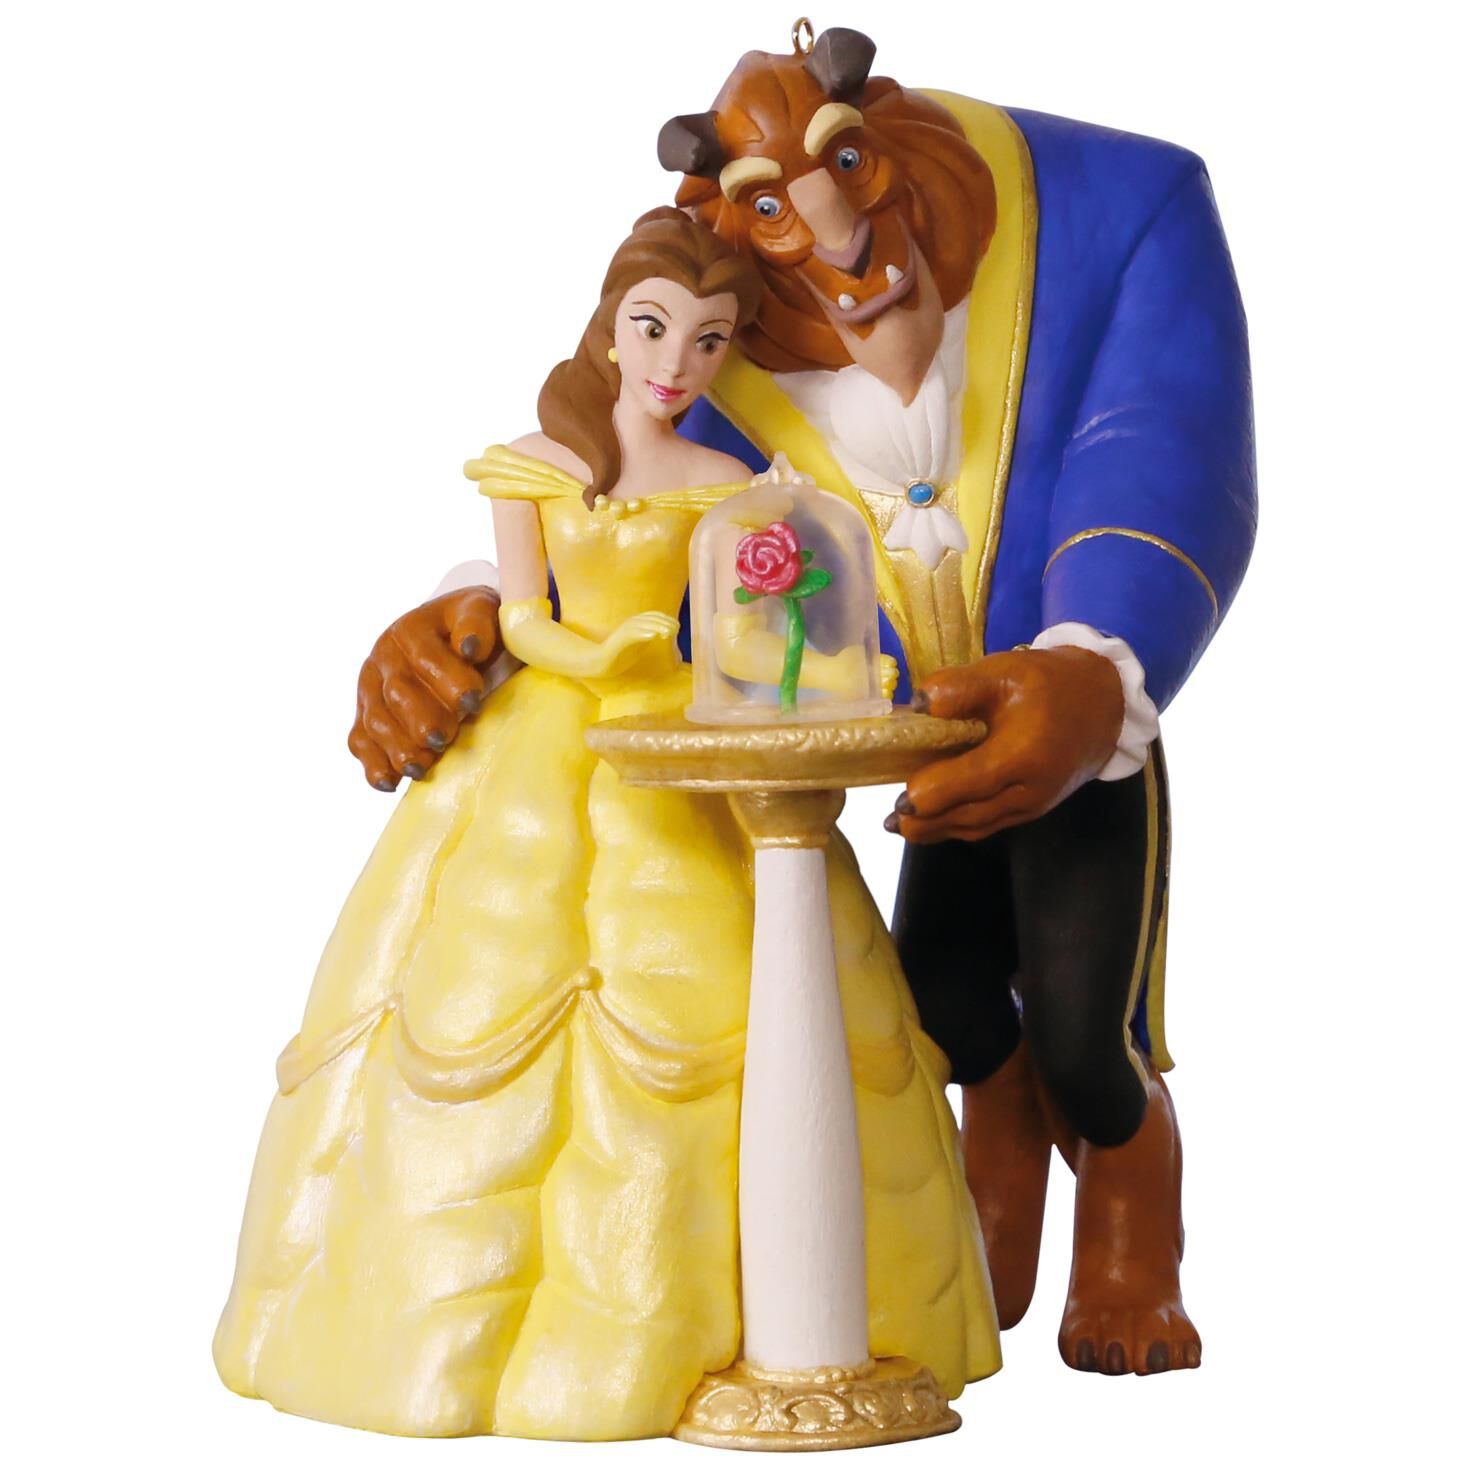 Belle ornament disney - Disney Beauty And The Beast Tale As Old As Time Ornament With Light And Music Keepsake Ornaments Hallmark